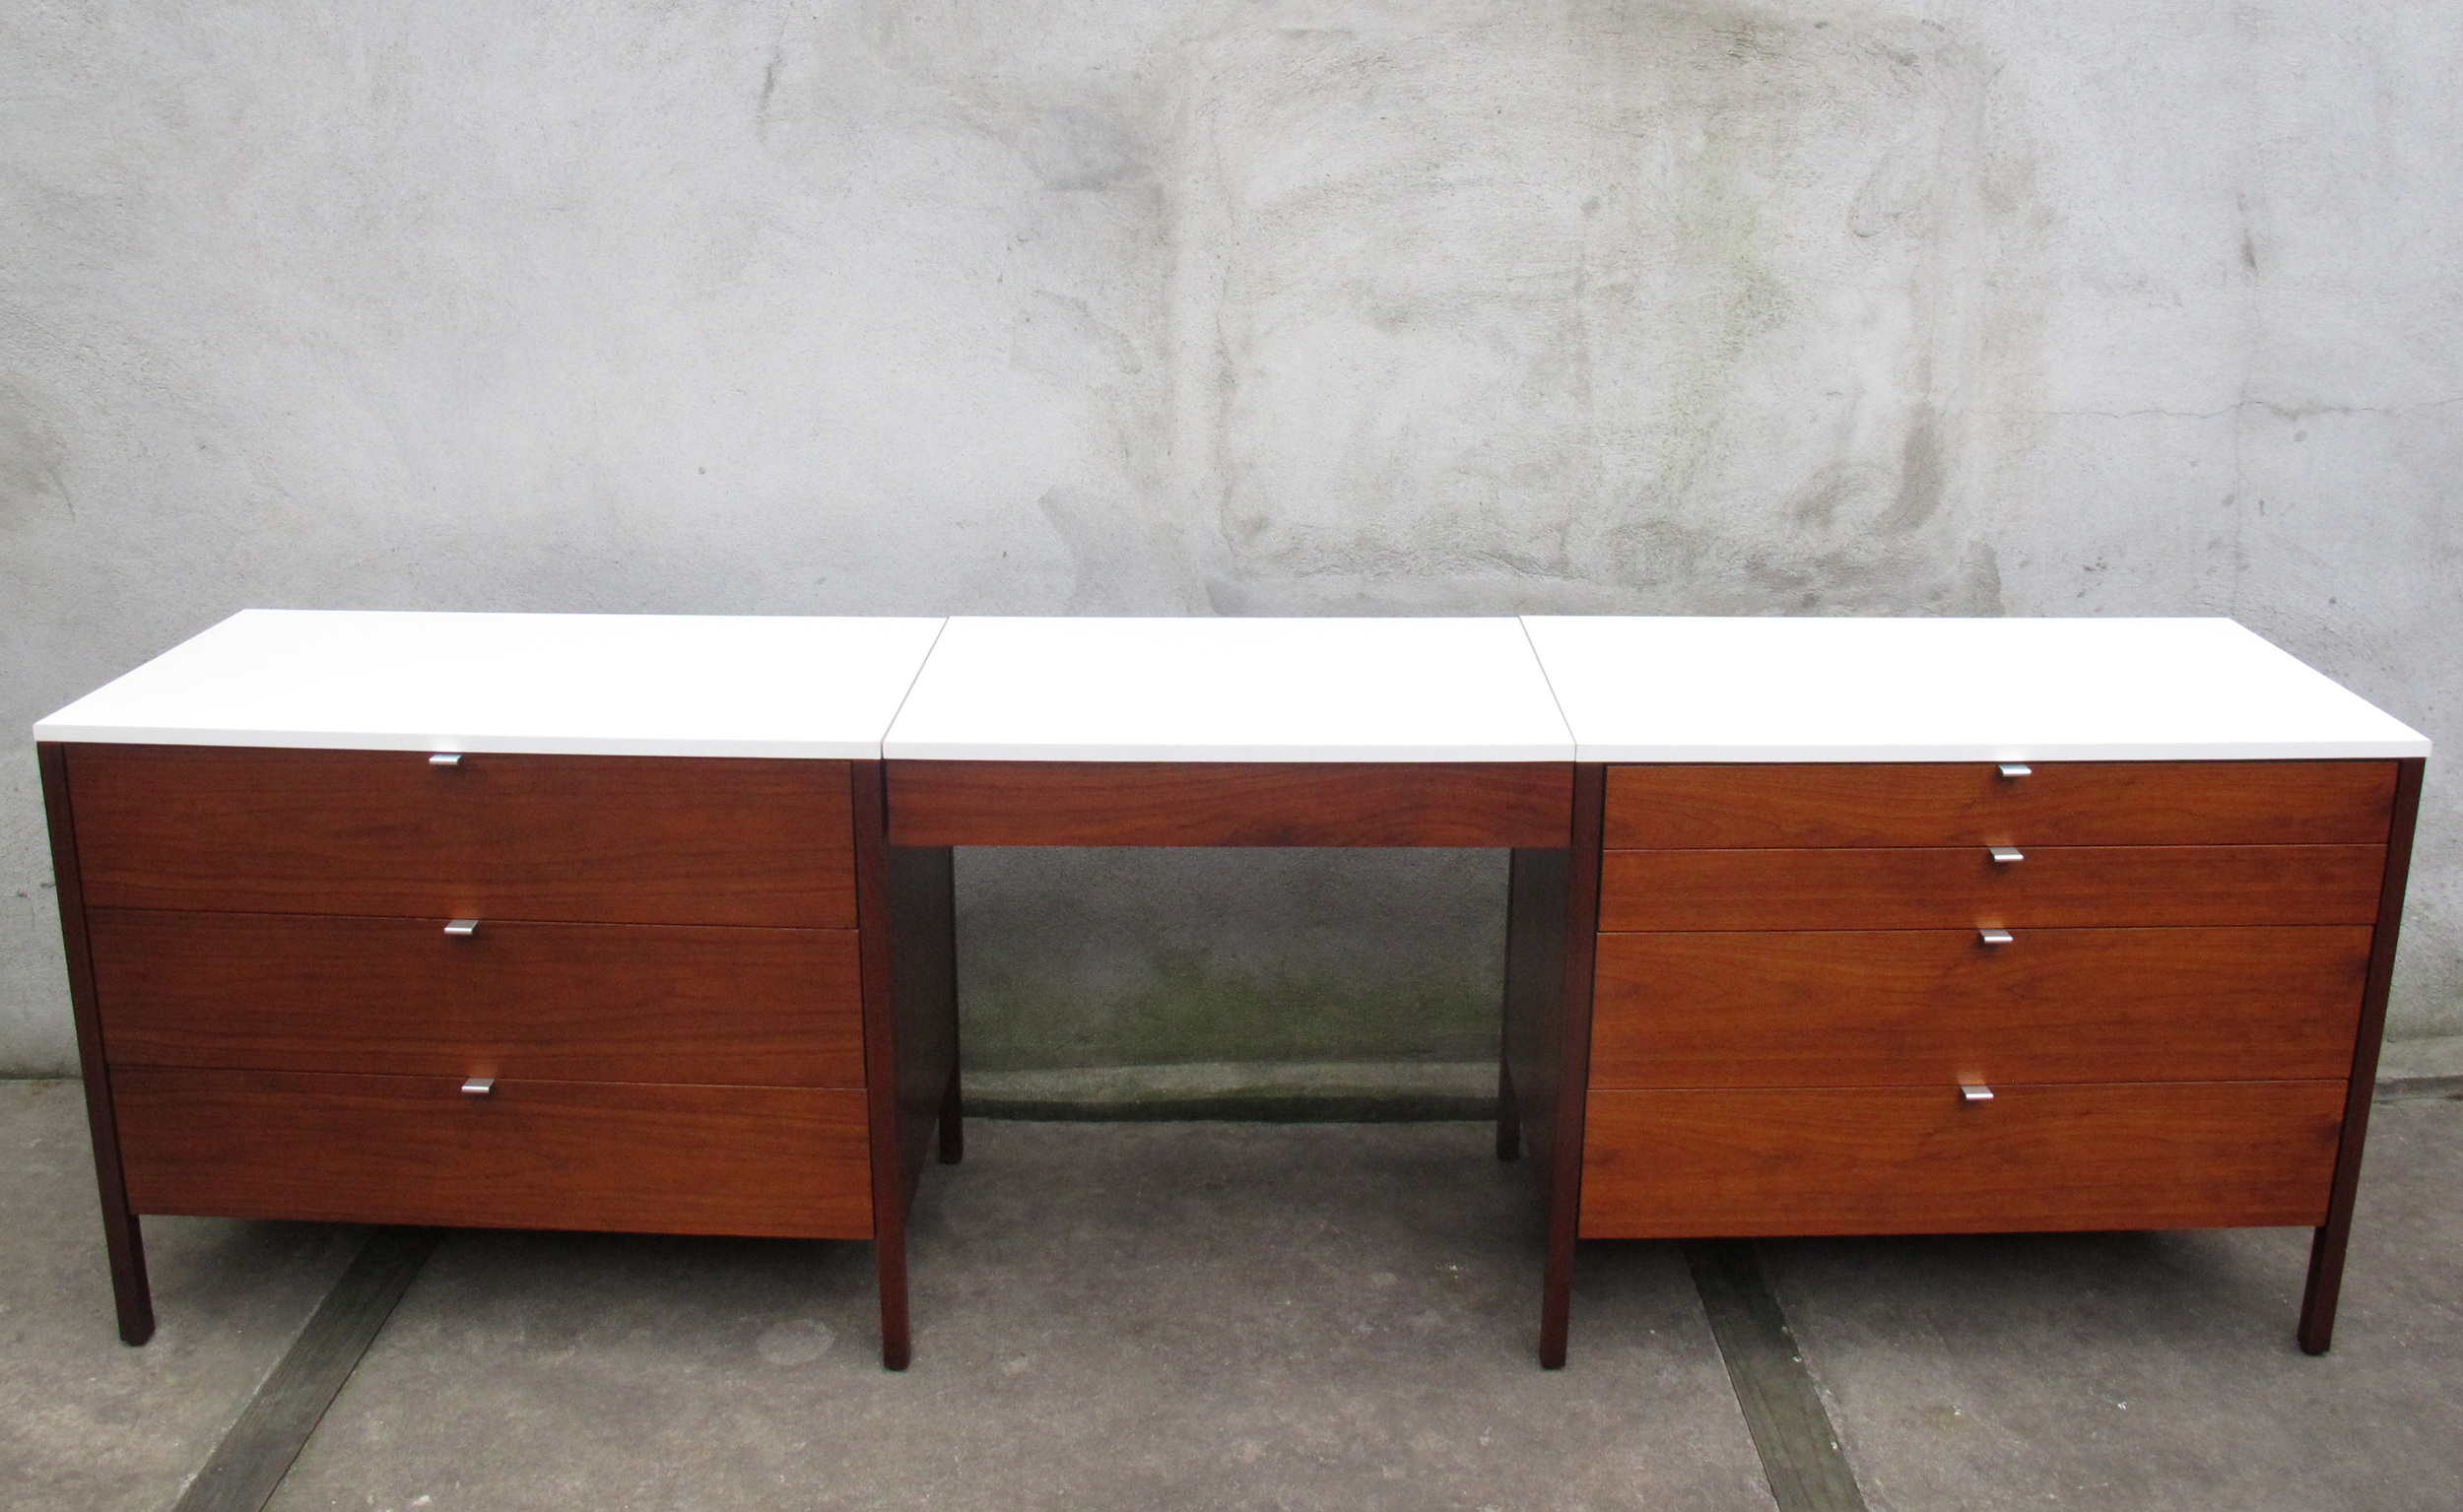 PAIR OF WALNUT CHESTS & VANITY DESK BY FLORENCE KNOLL